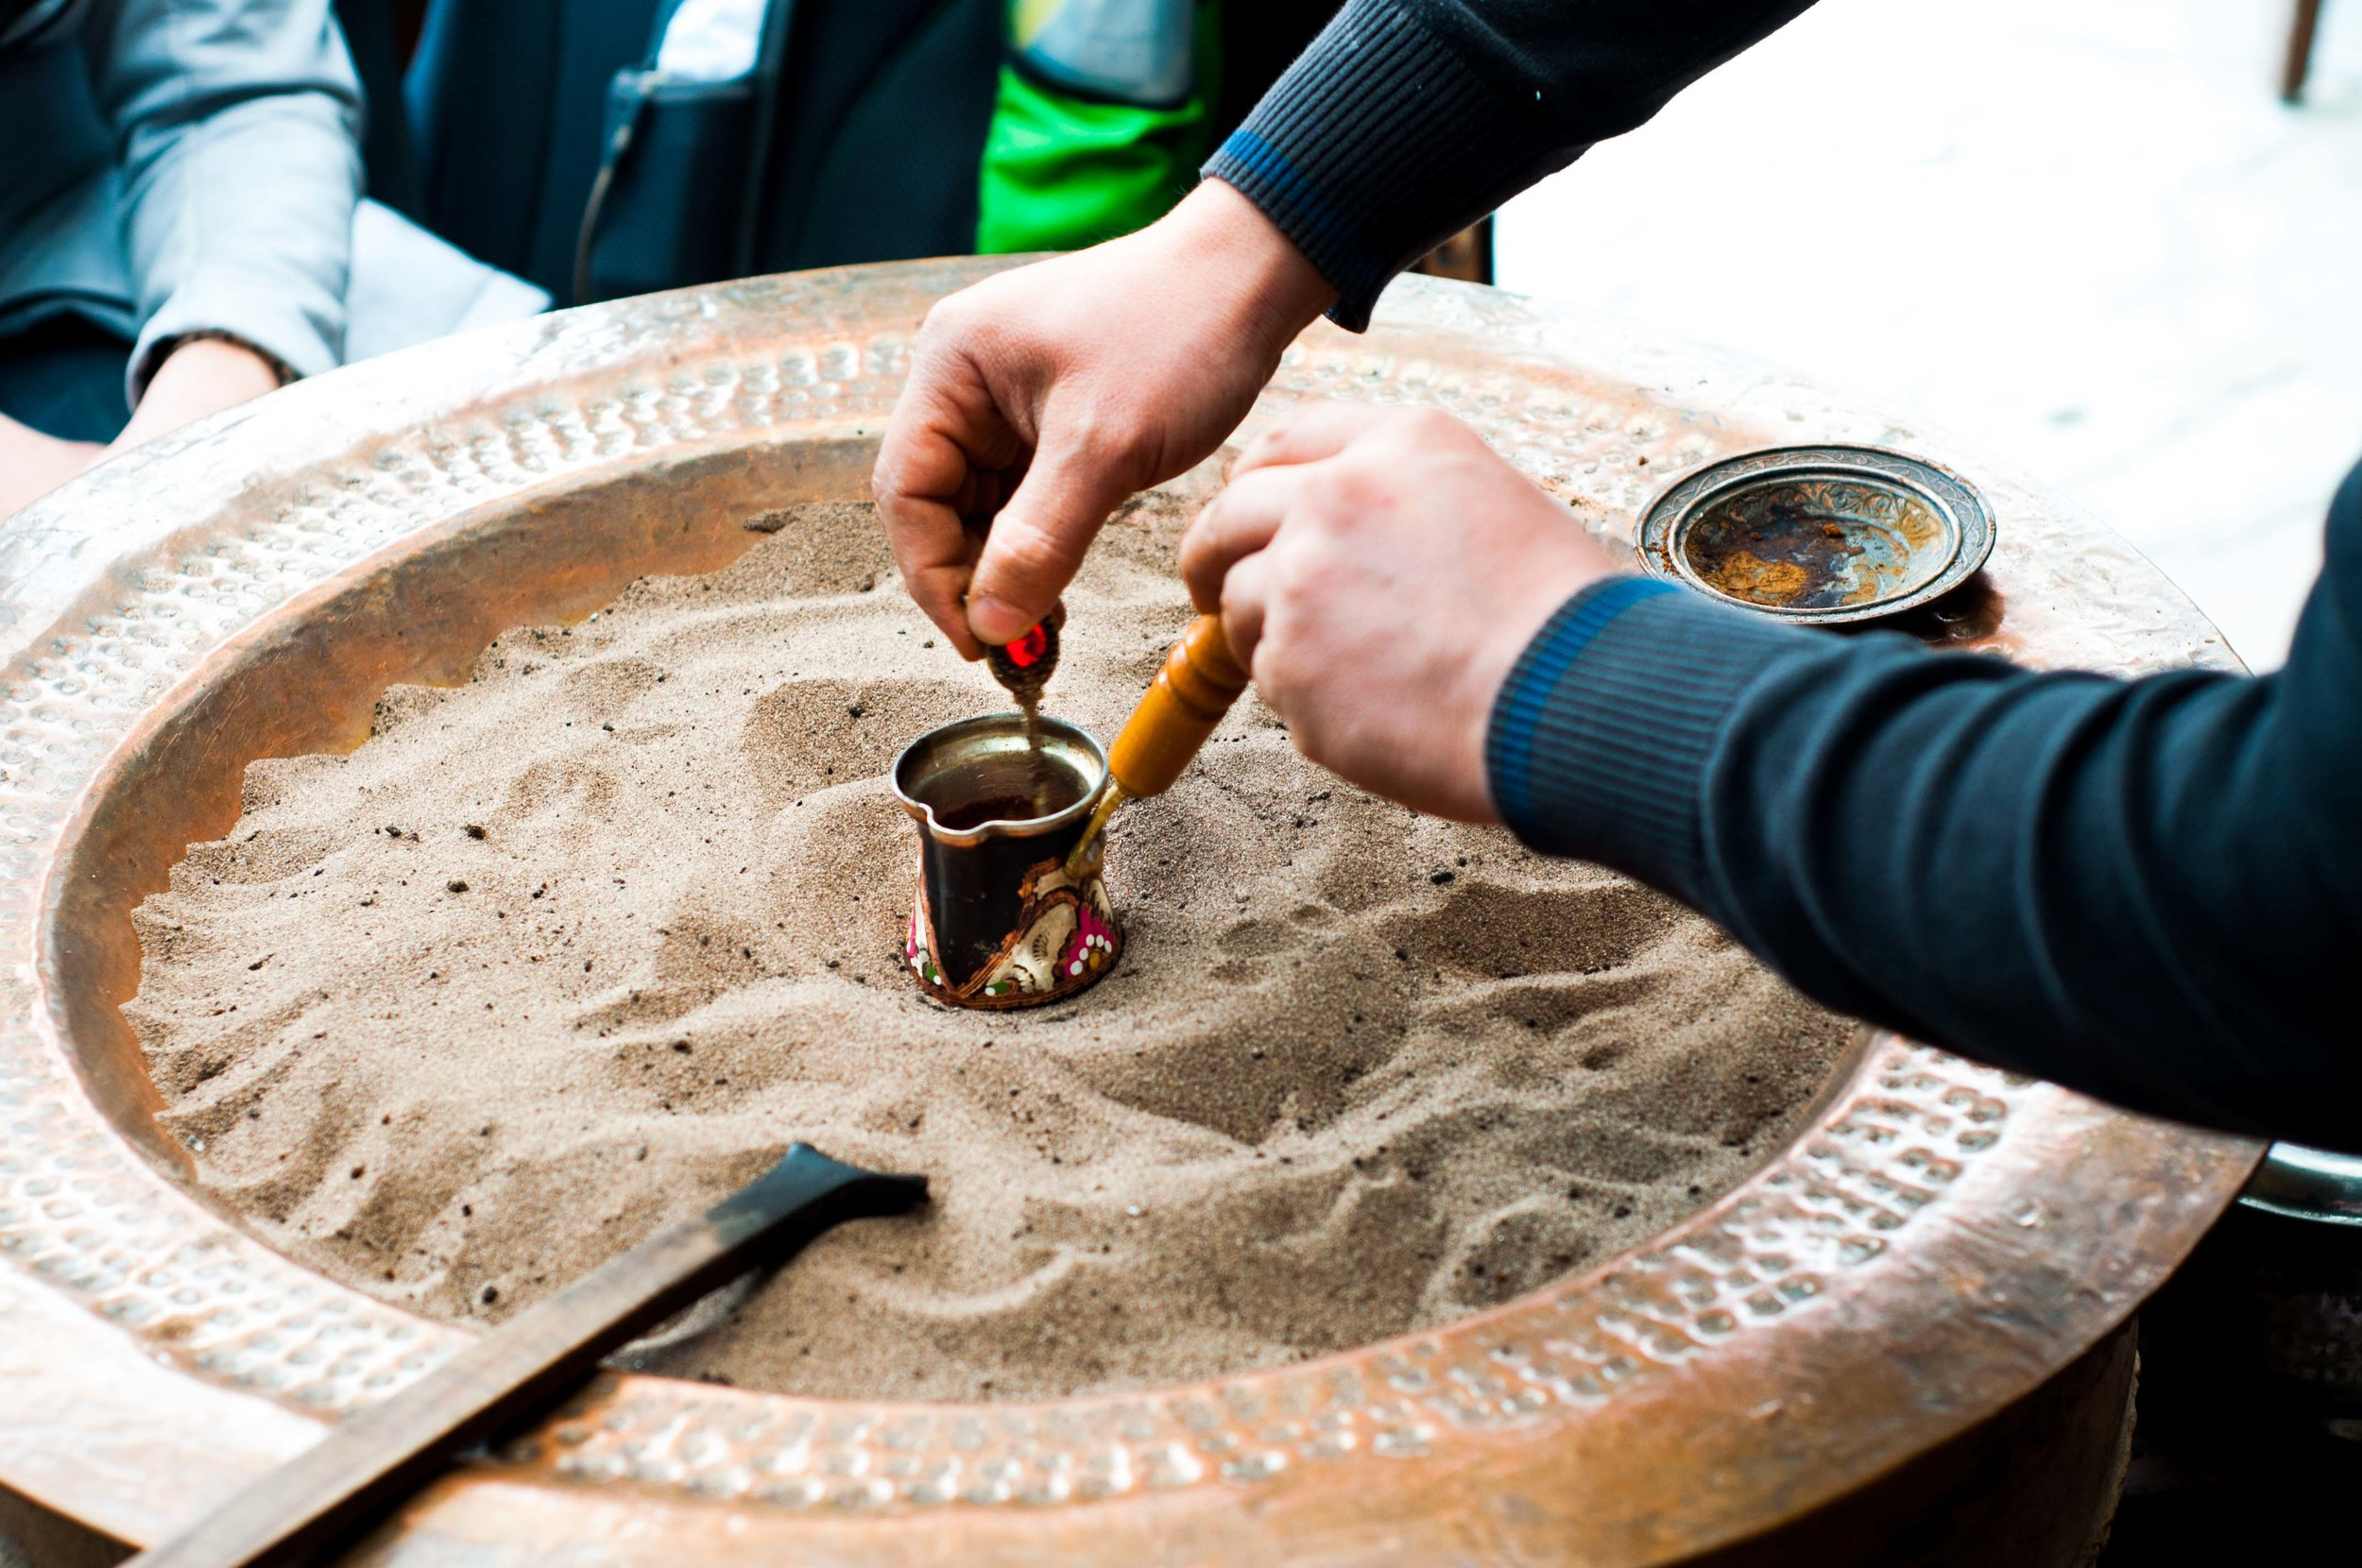 Sand-coffee-turkish-boil.jpg